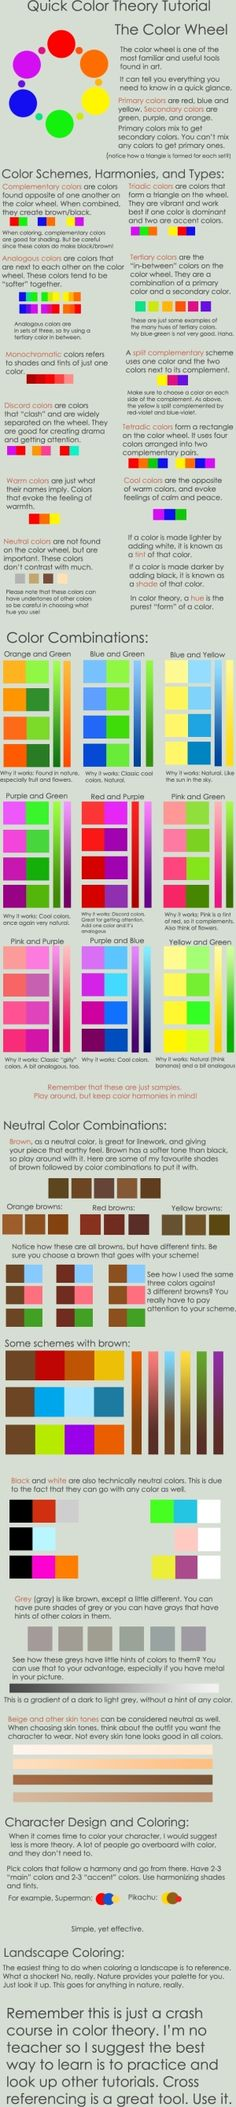 Color Theory Crash Course by *pronouncedyou on deviantART by anne.lindell.9